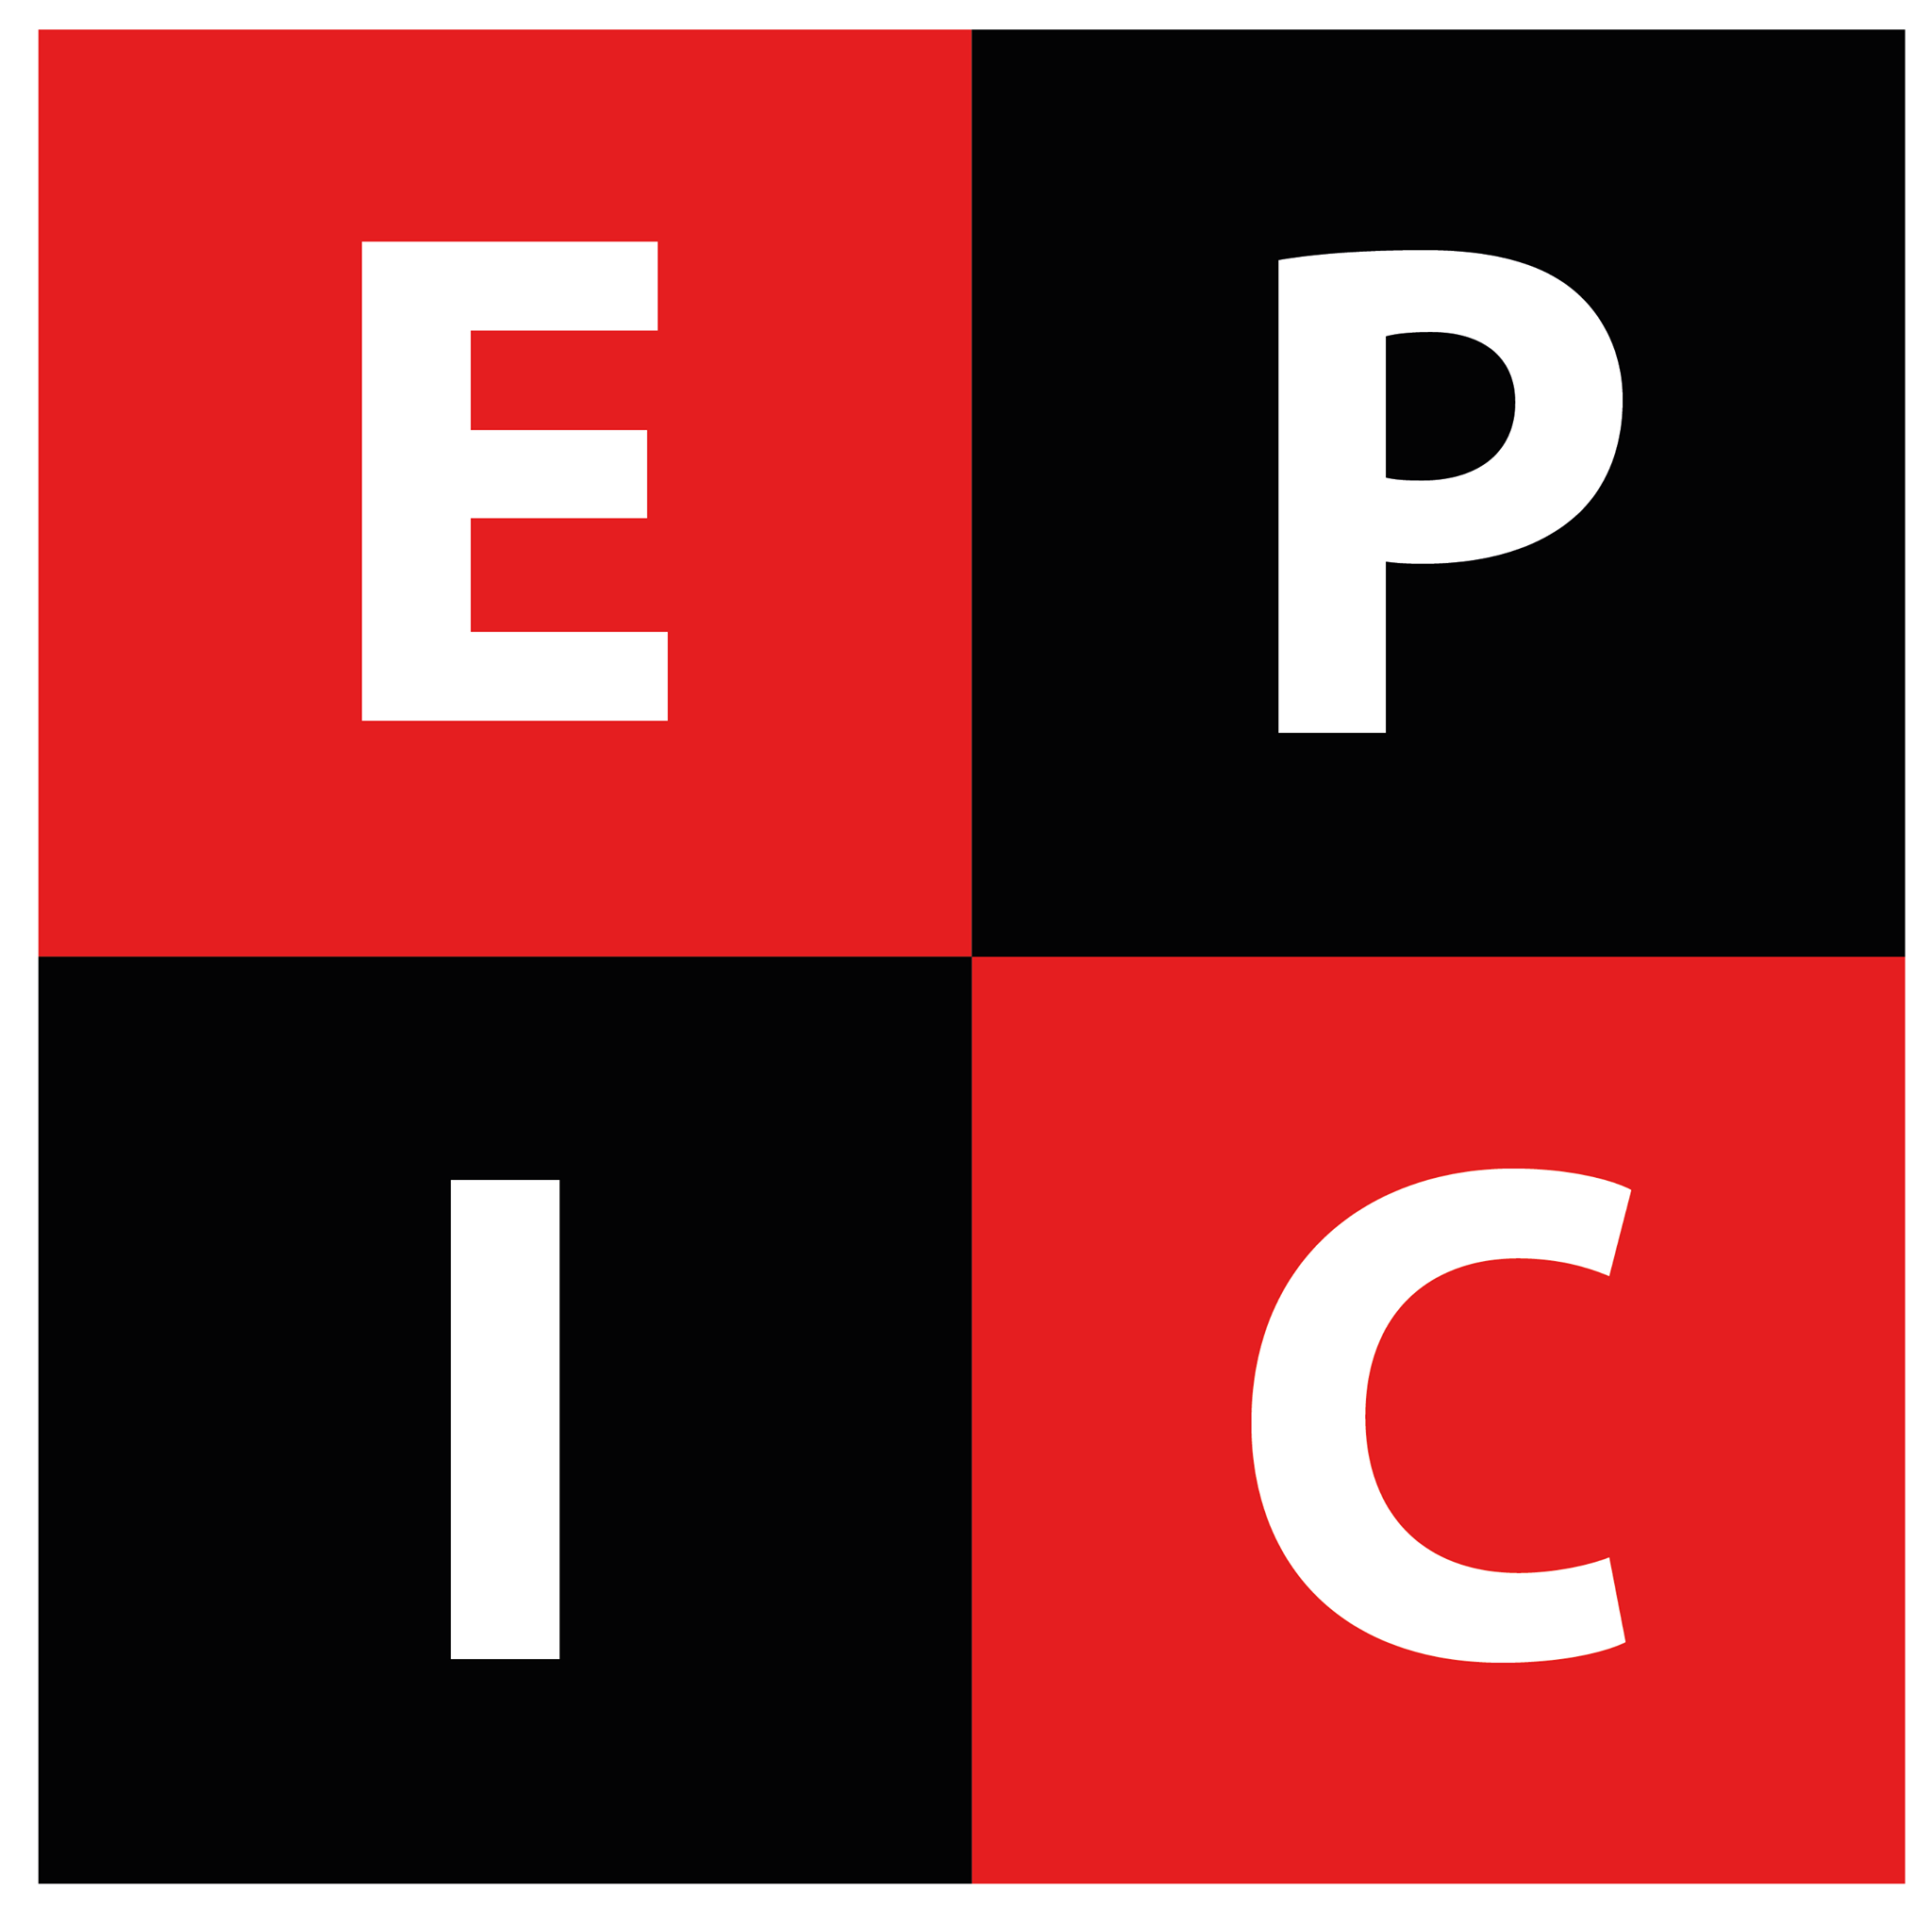 EPIC Enters RecoverMe Agreement To Aid Gambling Addiction